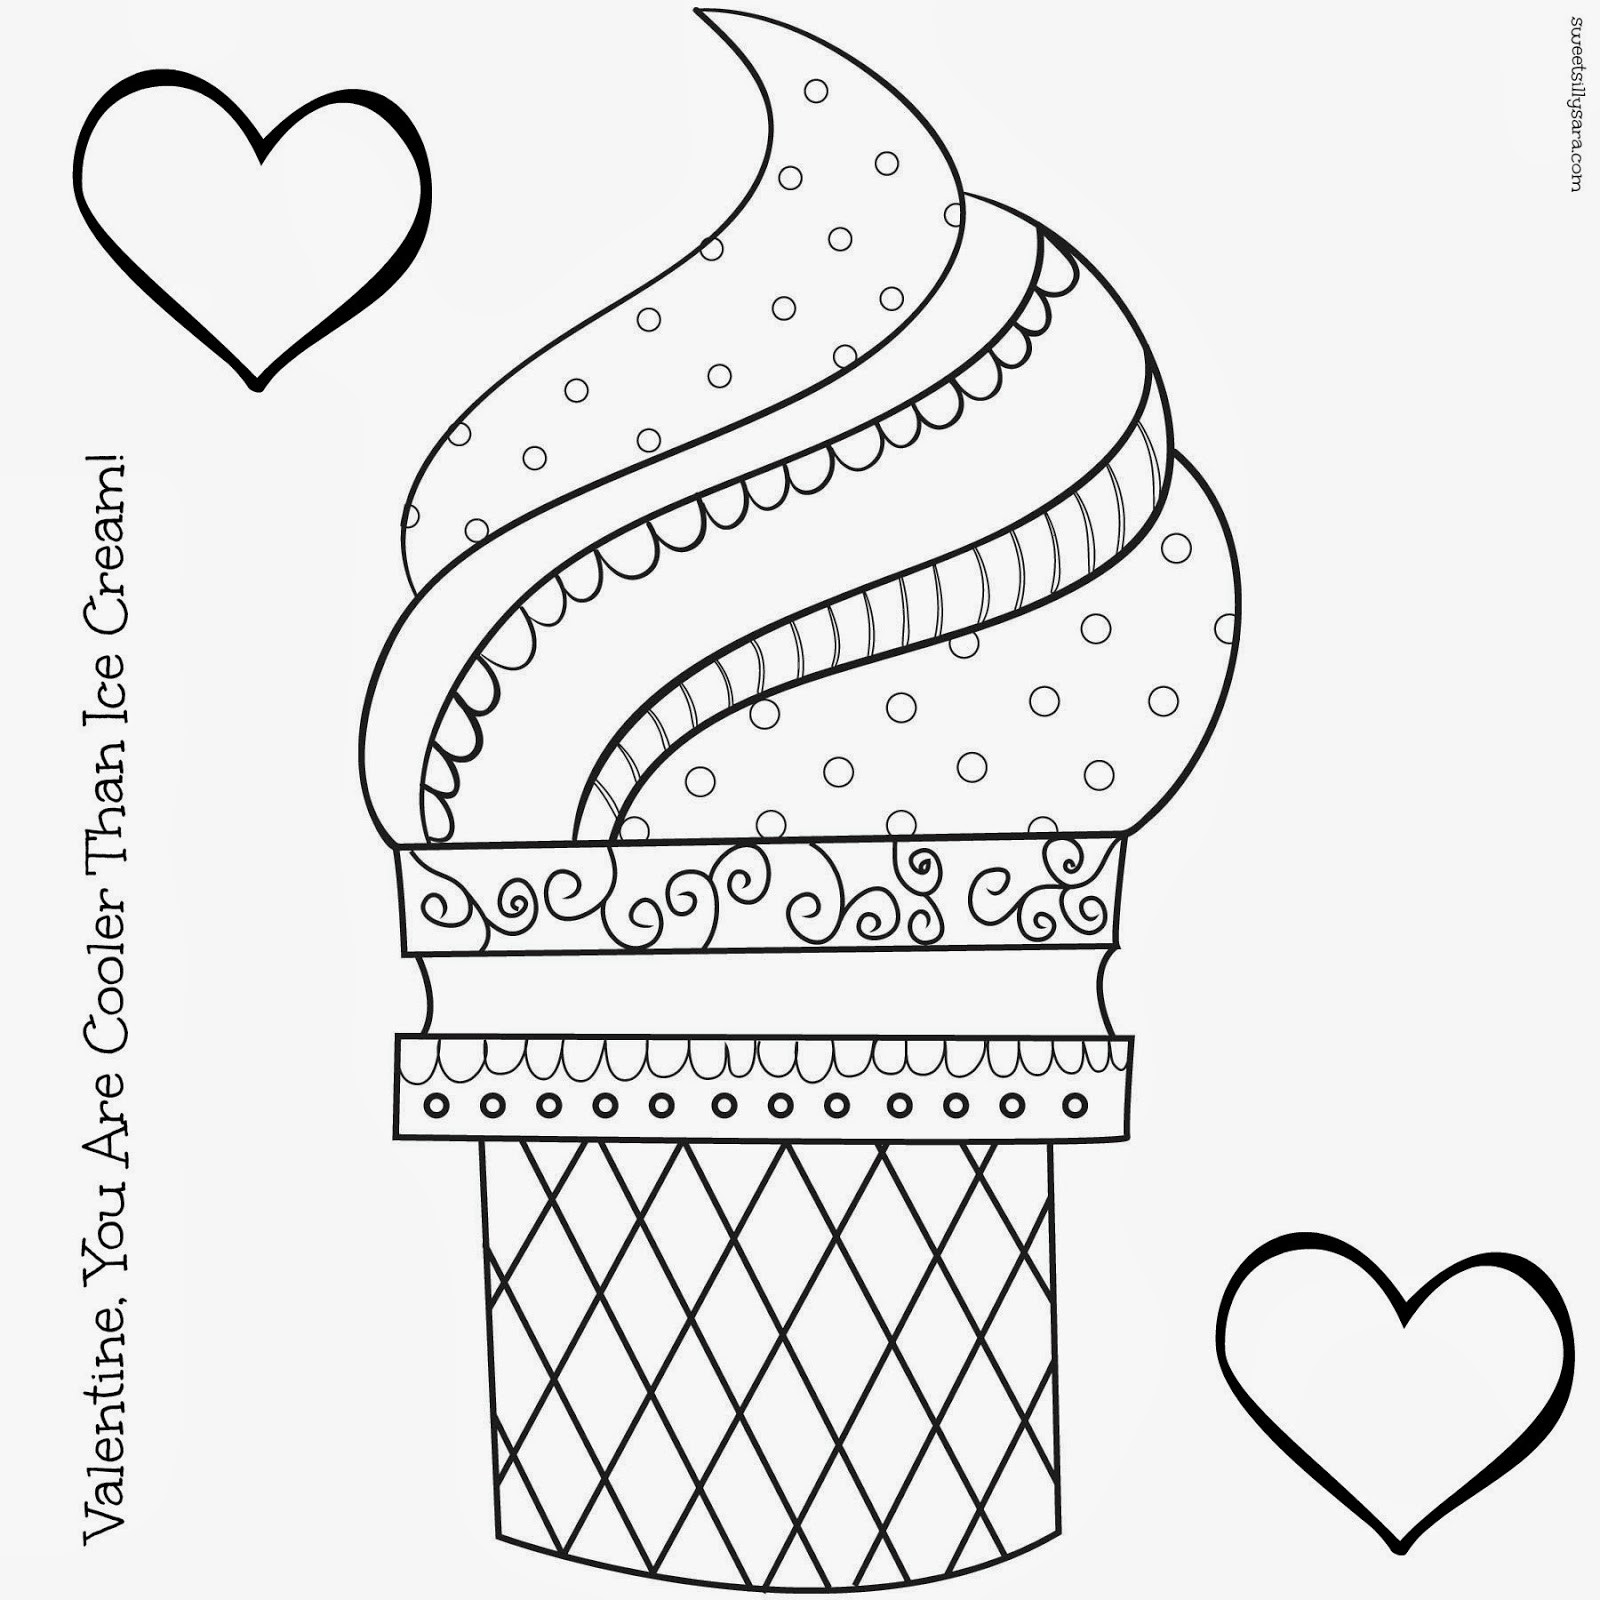 Coloring Pages For Girls 9 And Up  coloring pages for girls 9 and up